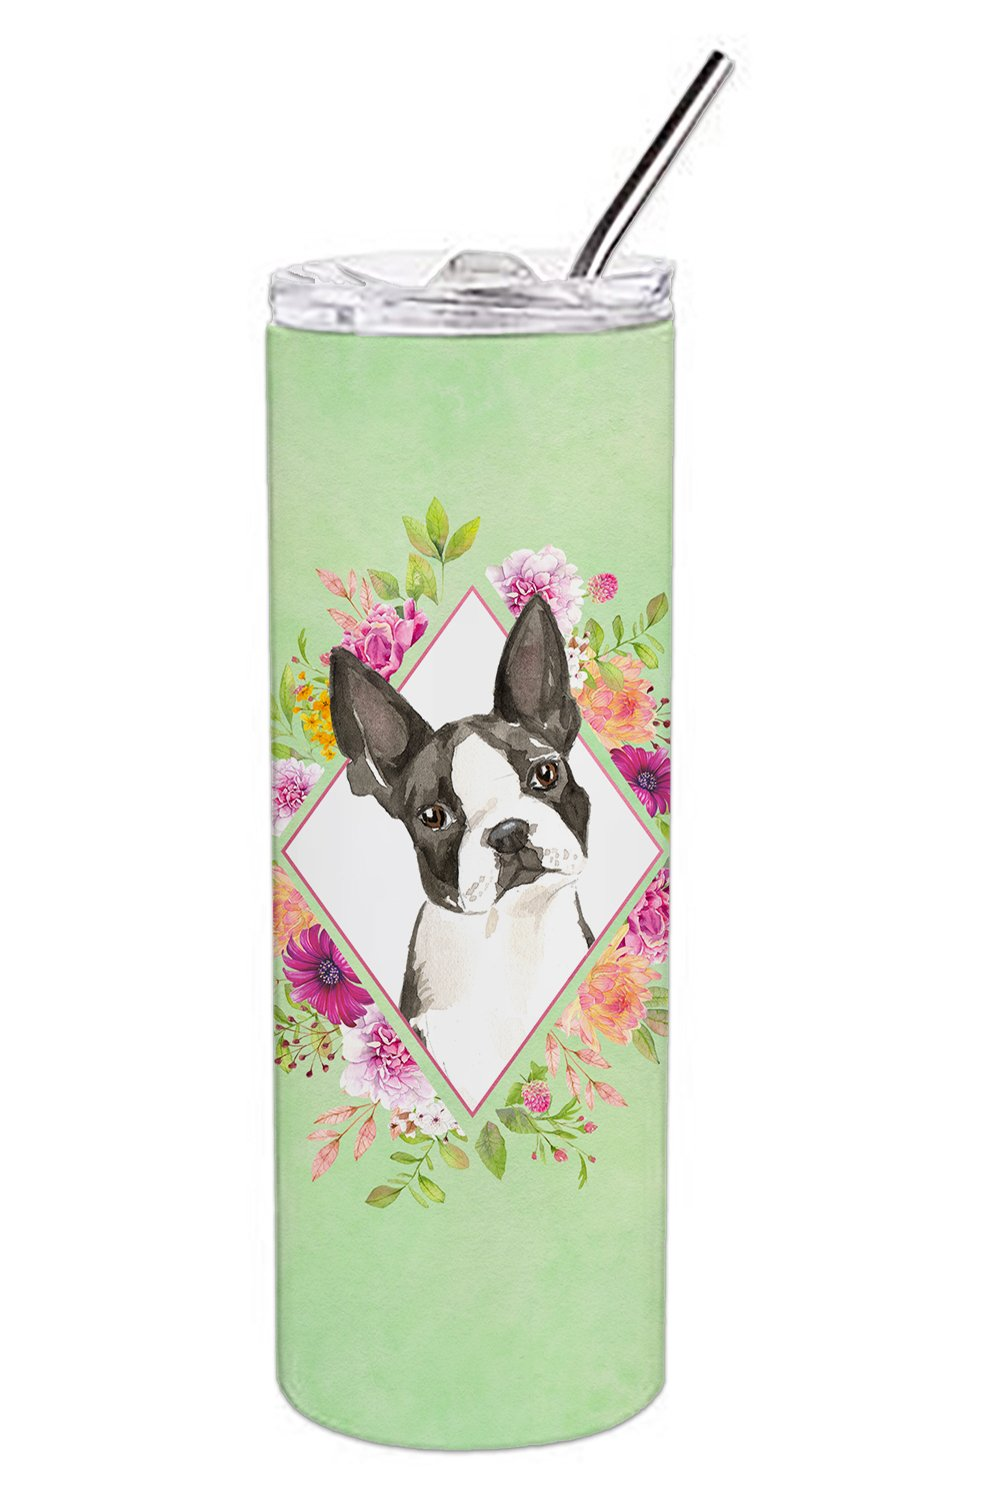 Boston Terrier Green Flowers Double Walled Stainless Steel 20 oz Skinny Tumbler CK4417TBL20 by Caroline's Treasures